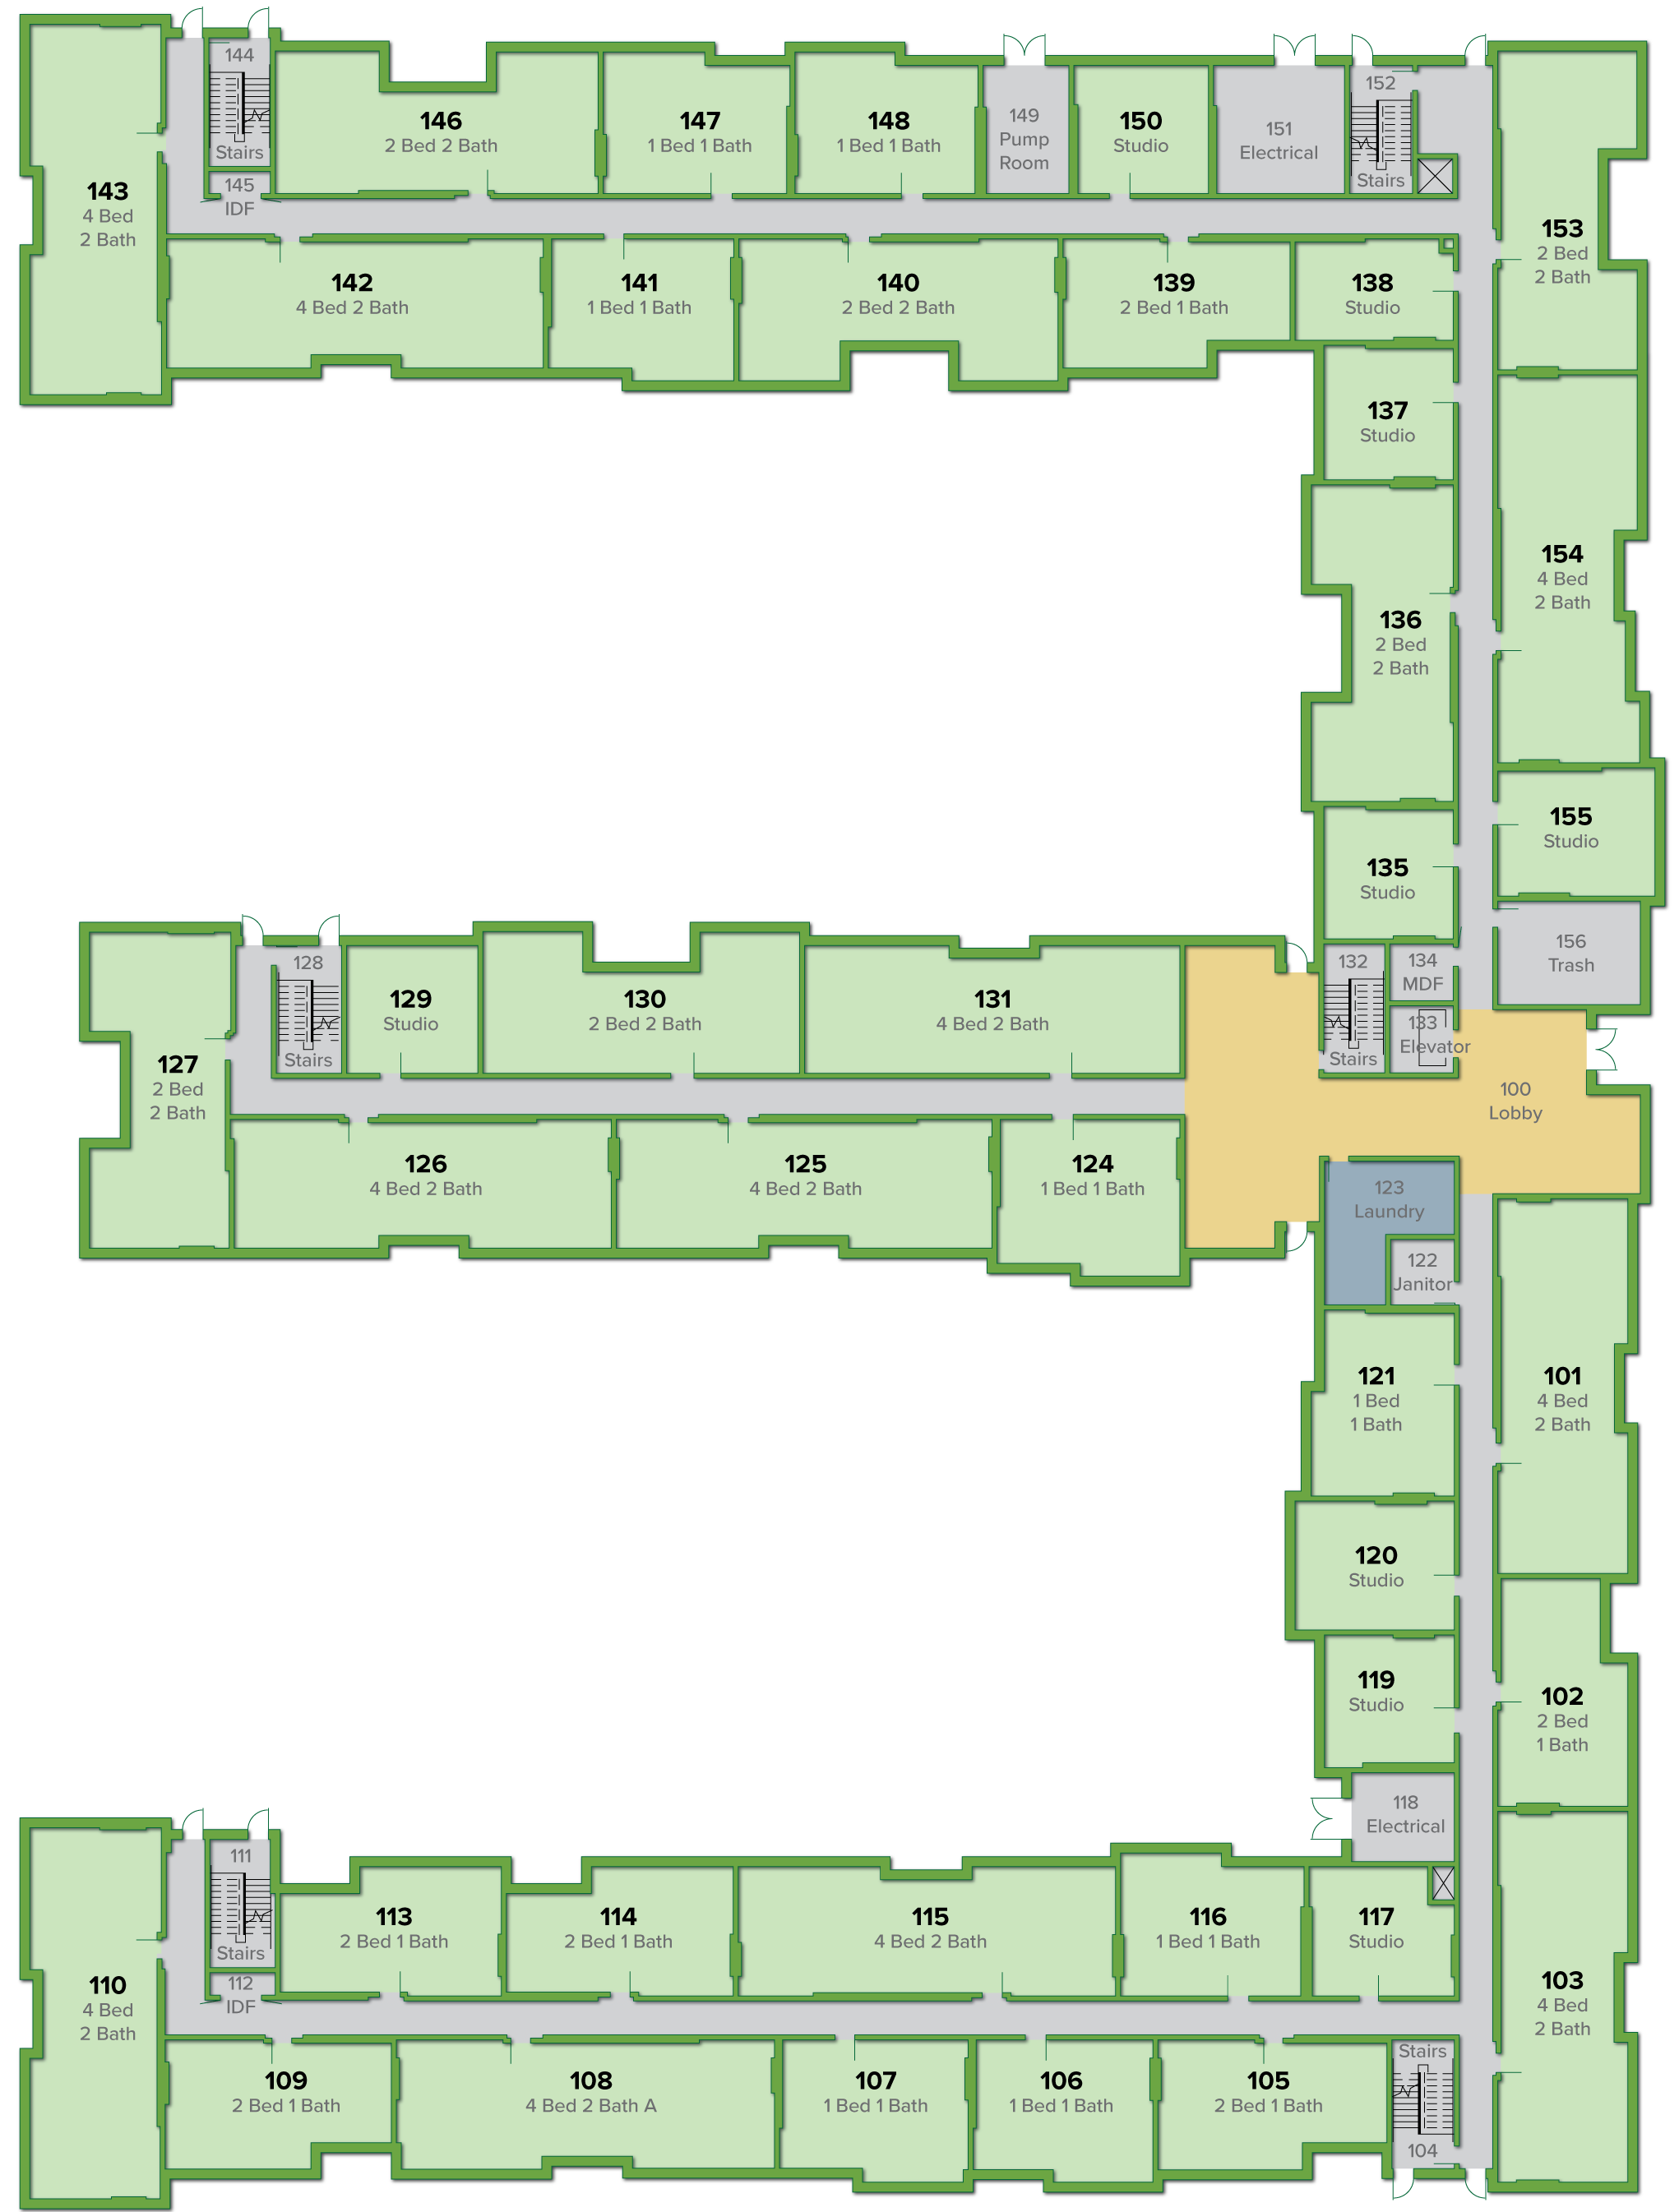 E2 Building, First Floor